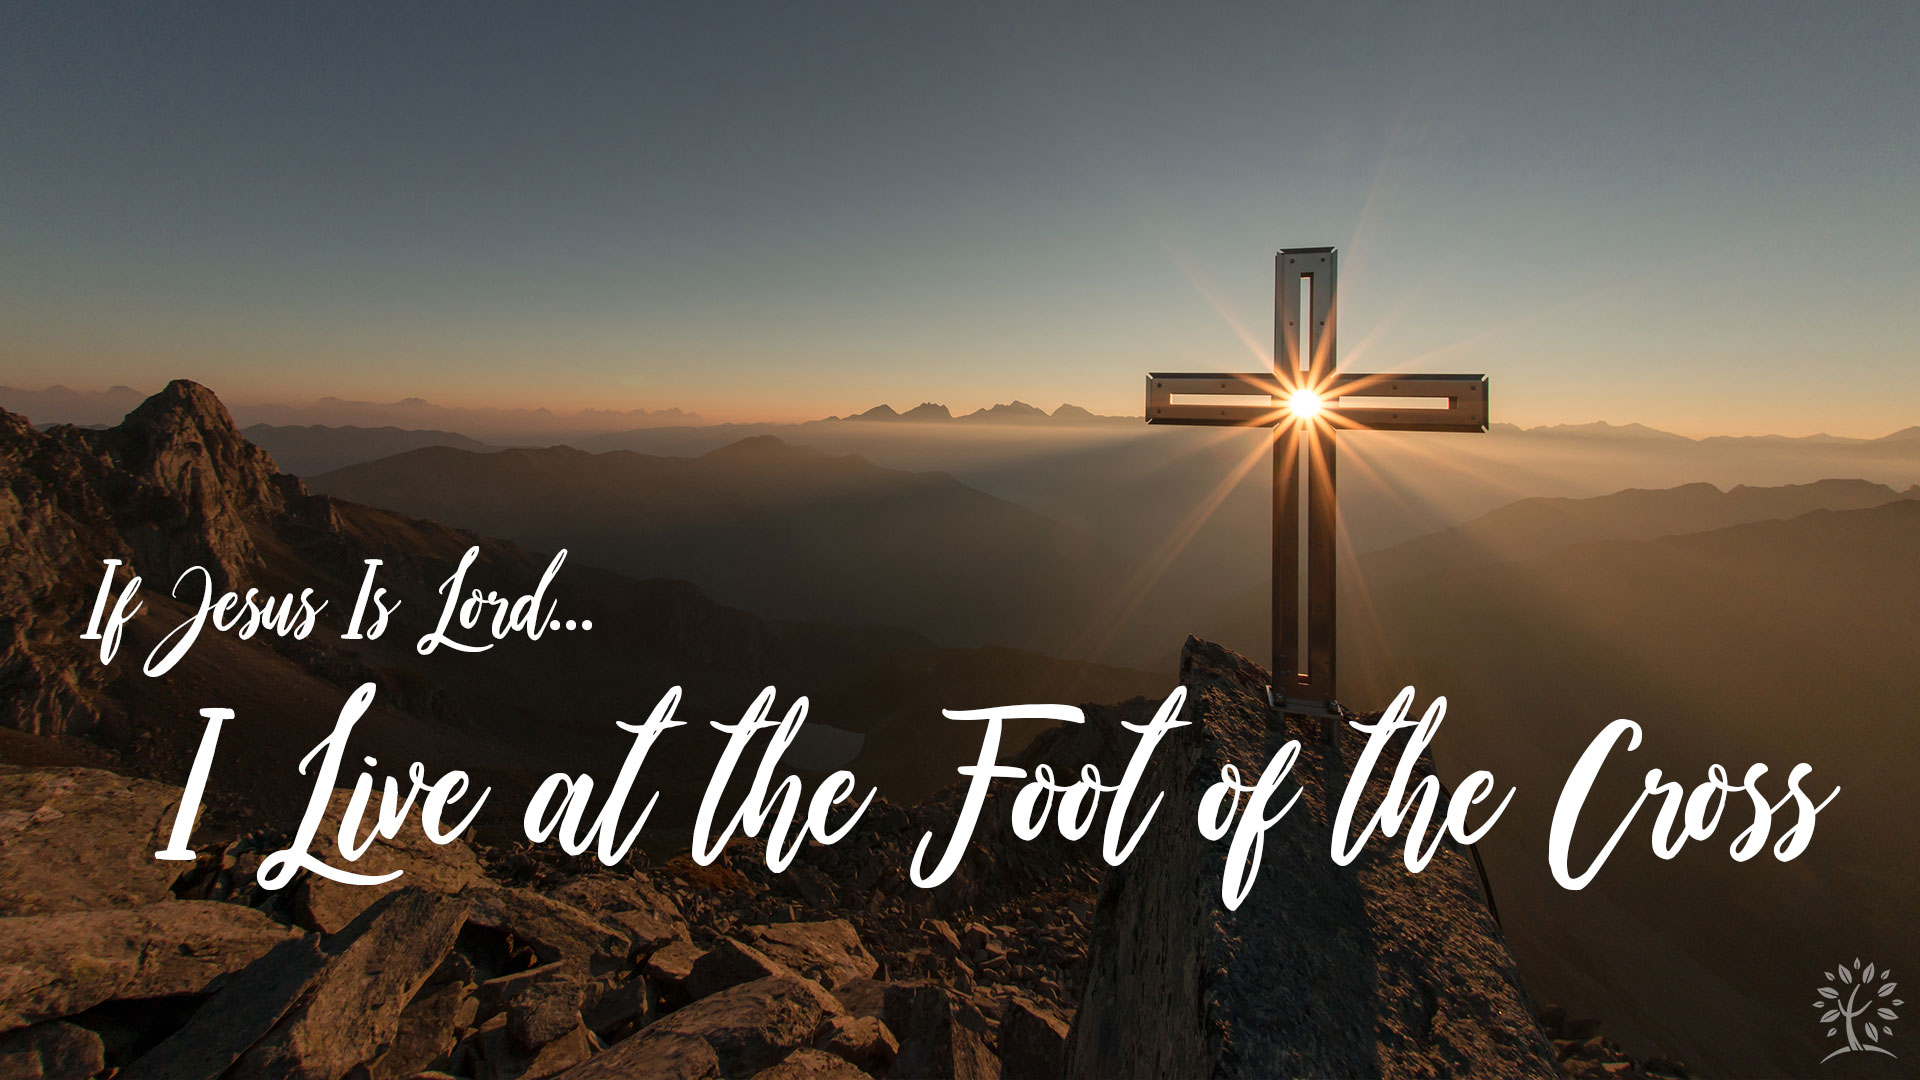 Series: I Live at the Foot of the Cross